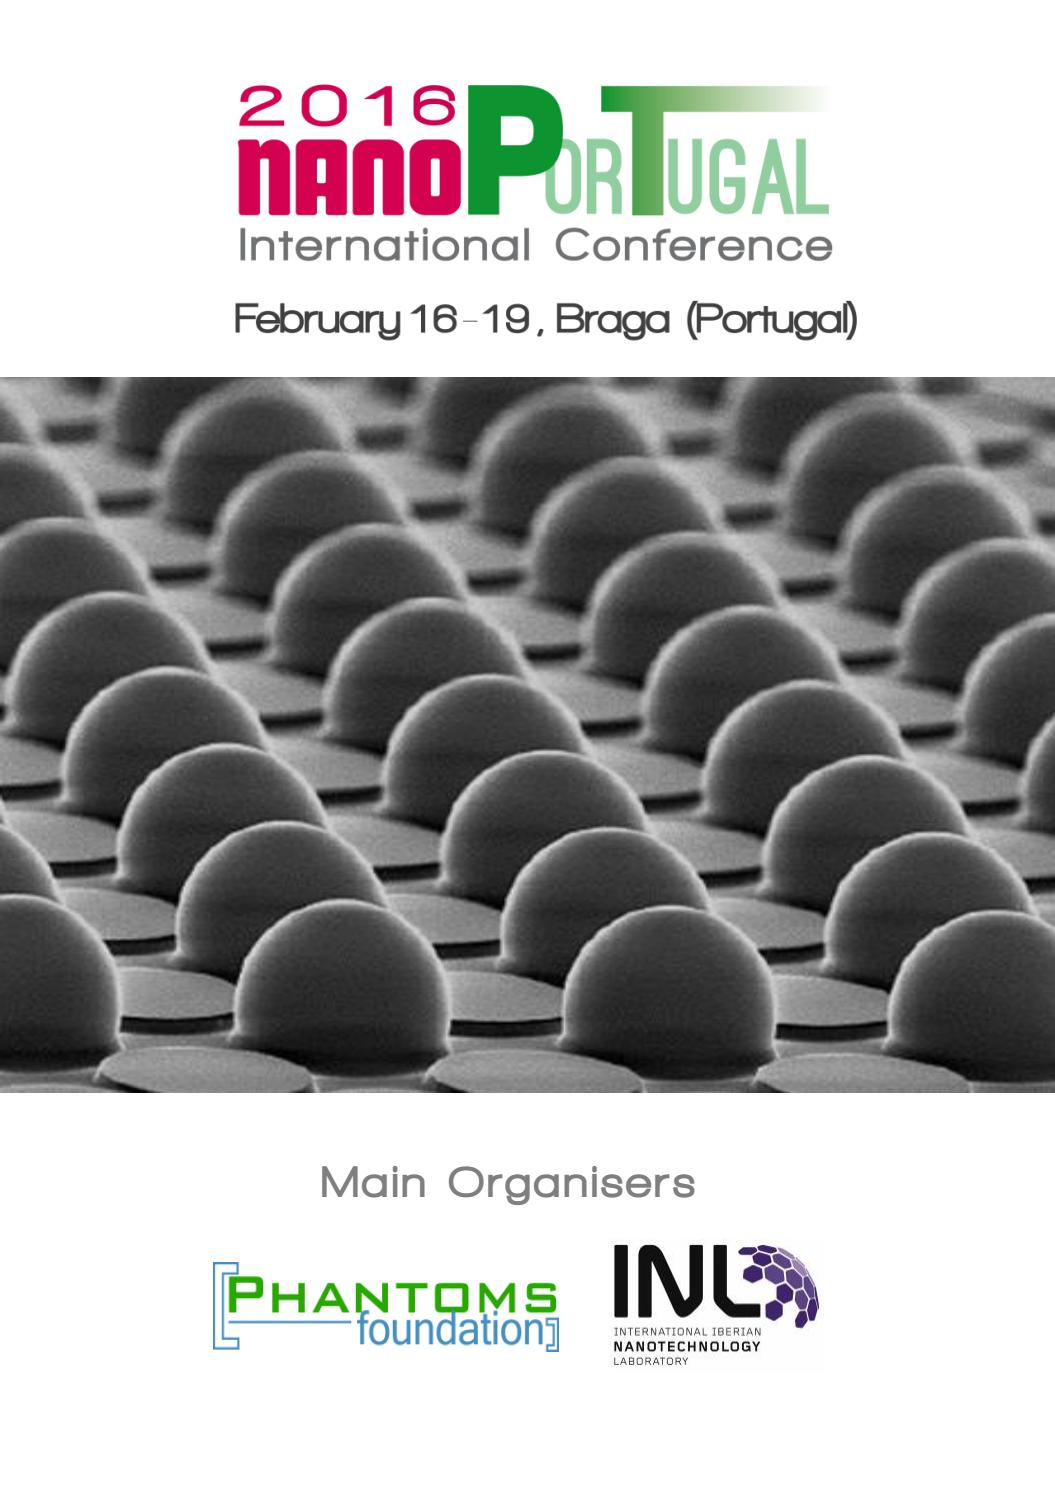 NanoPt2016 conference book by Phantoms Foundation - issuu